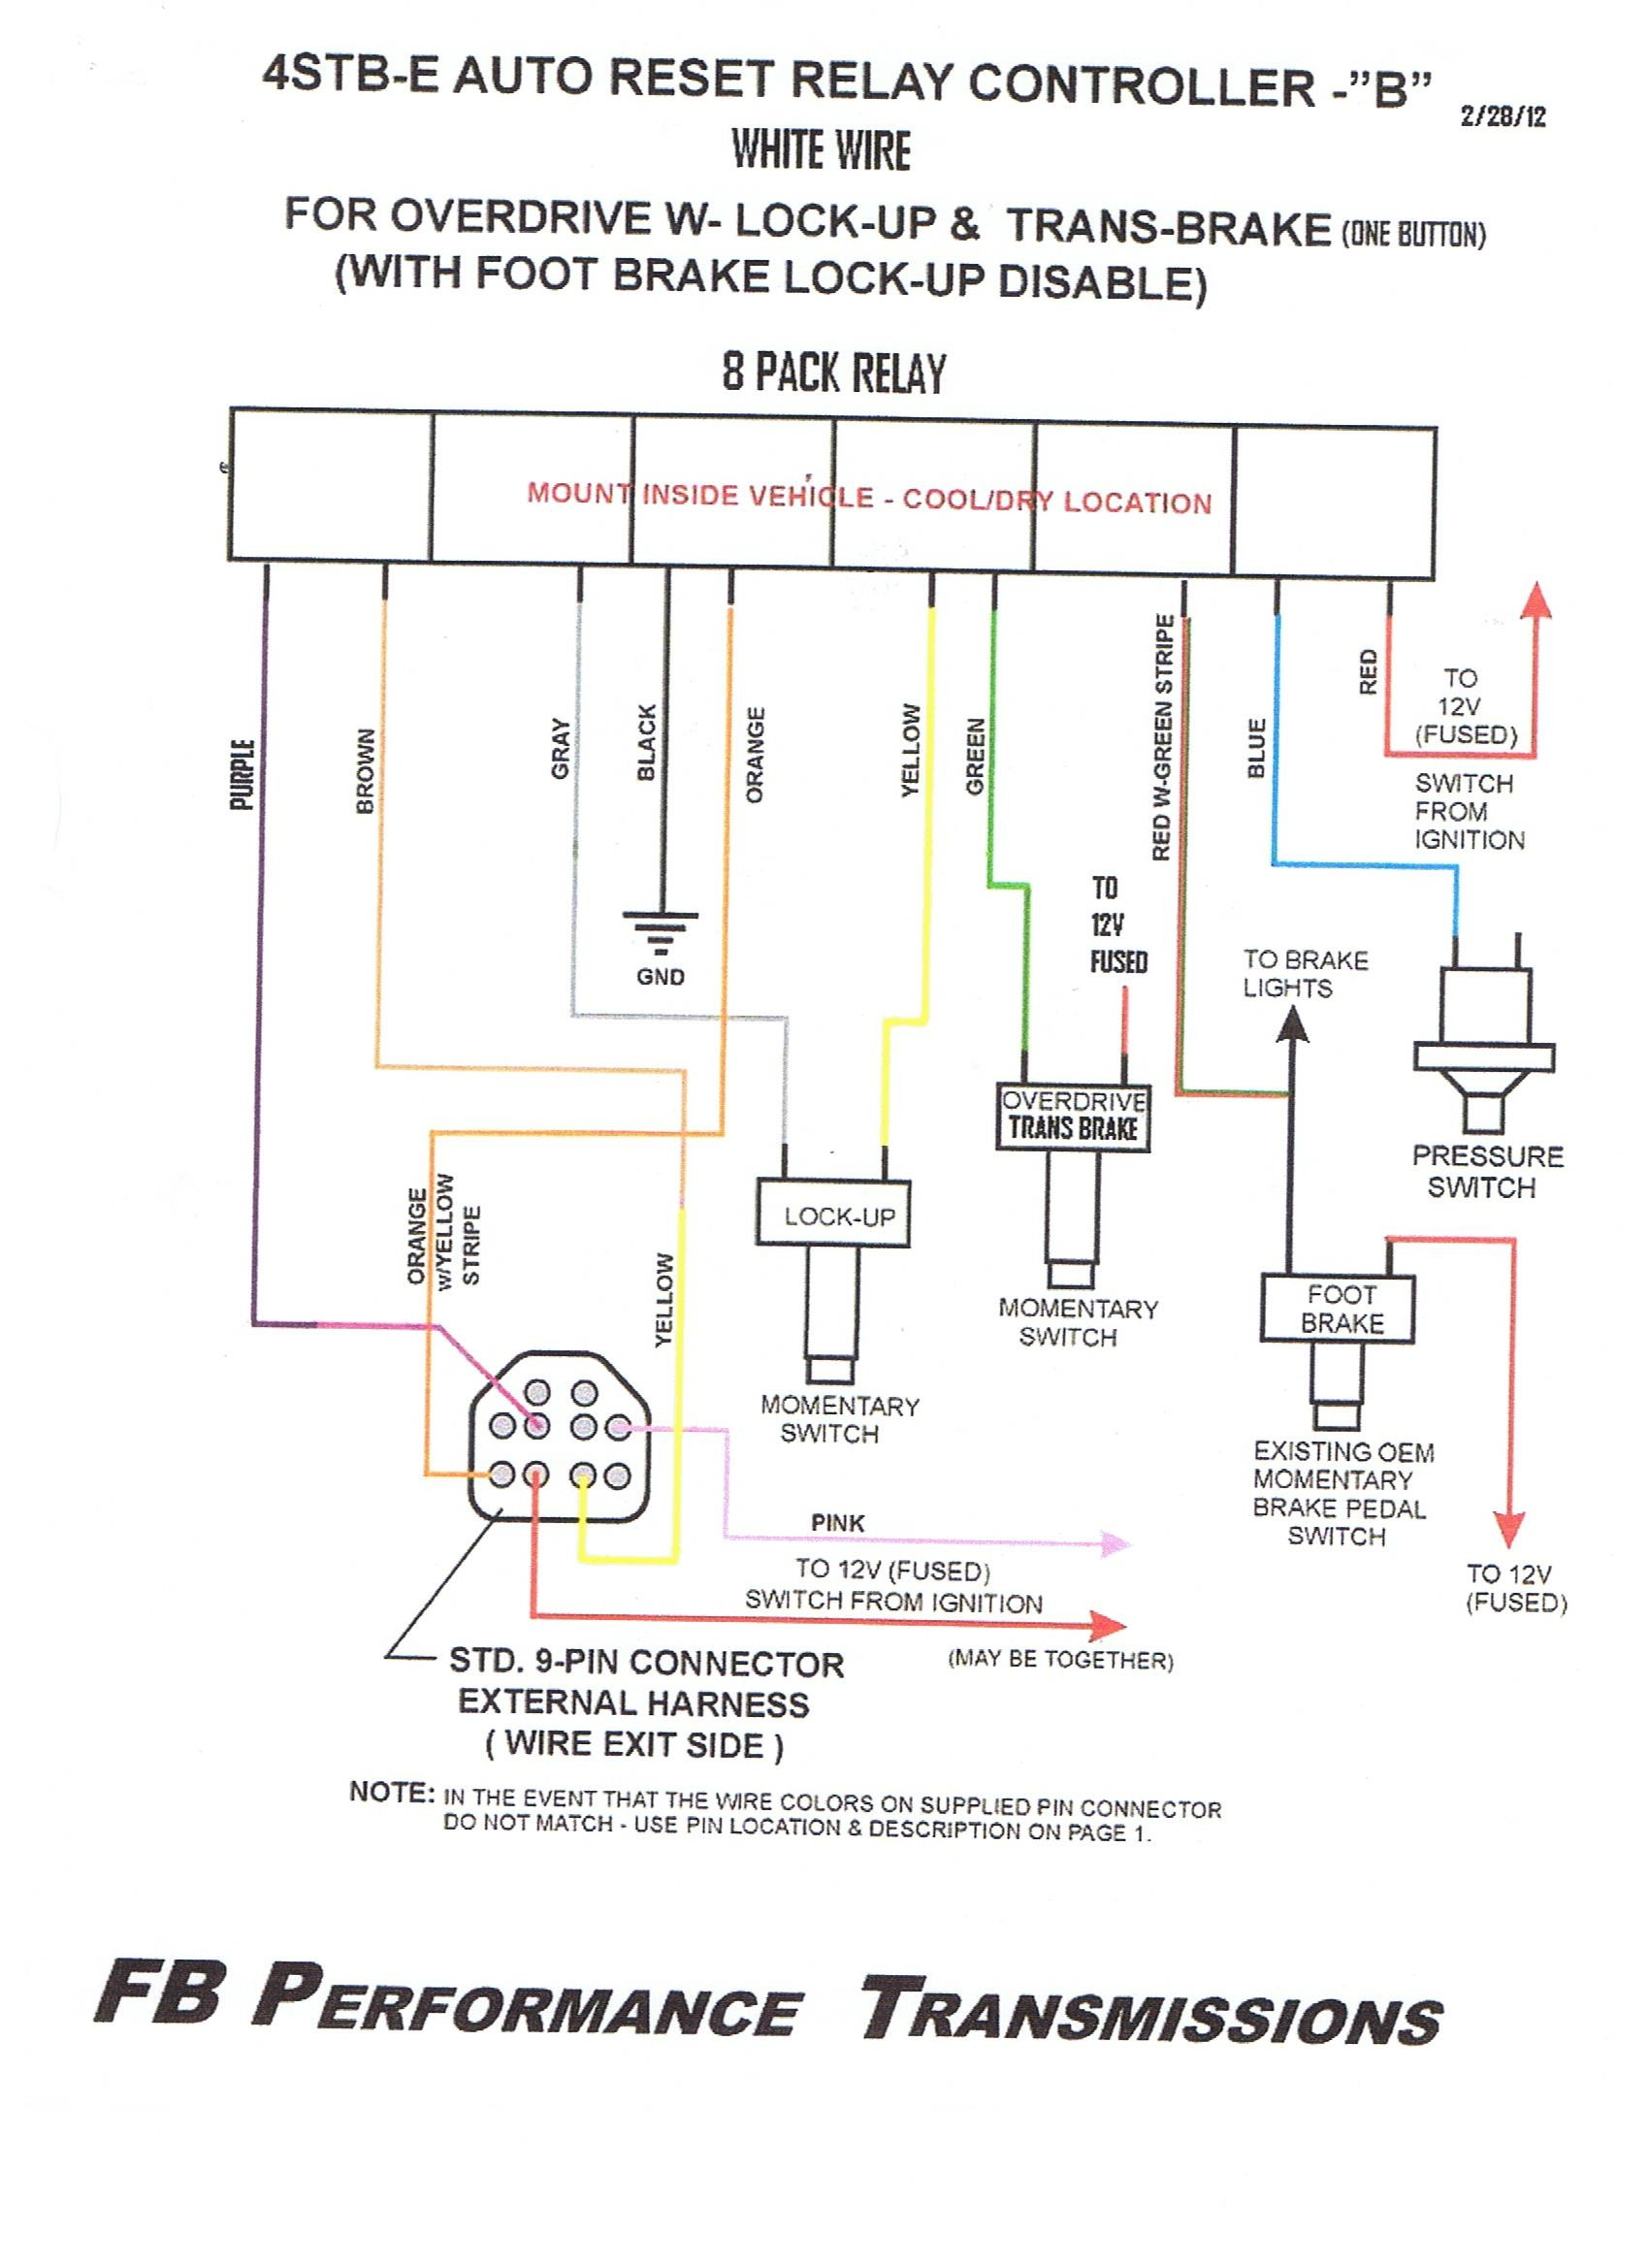 hydraulic solenoid valve wiring diagram Collection-Wiring Diagram Symbol Solenoid Simple Hydraulic Solenoid Valve Wiring Diagram New Ford Axod Transmission 5-i